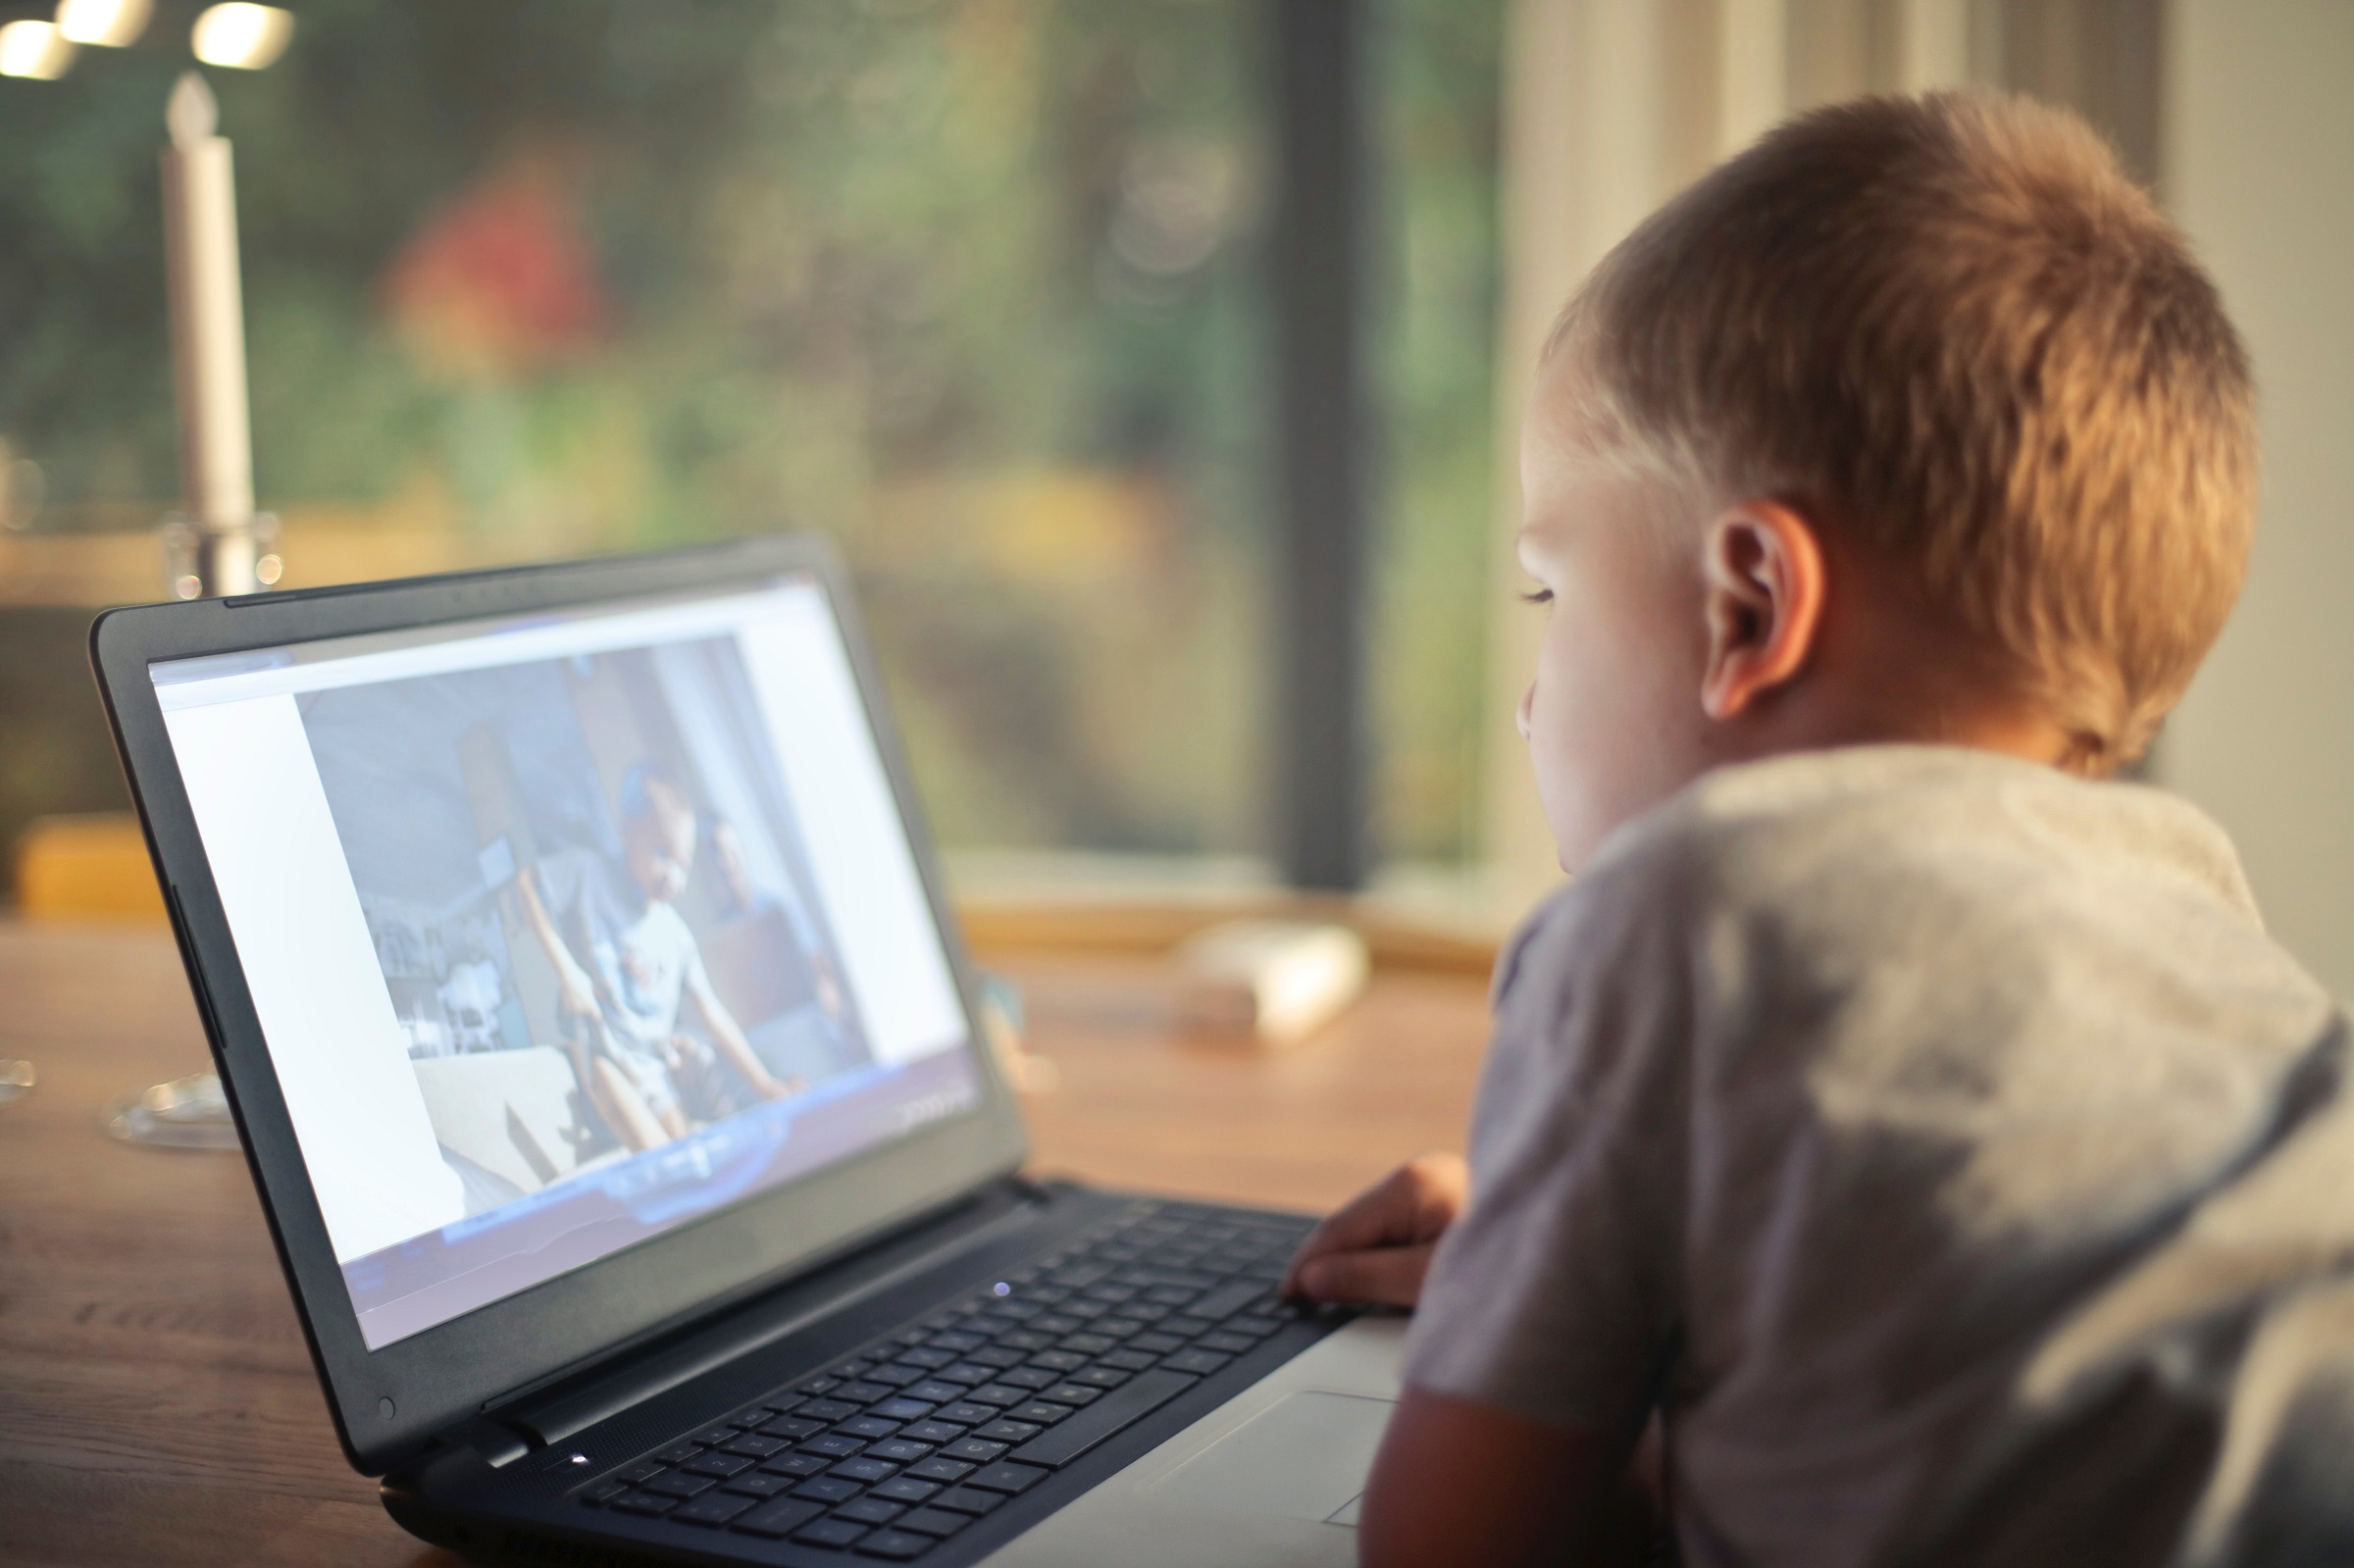 boy-watching-video-using-laptop-821948